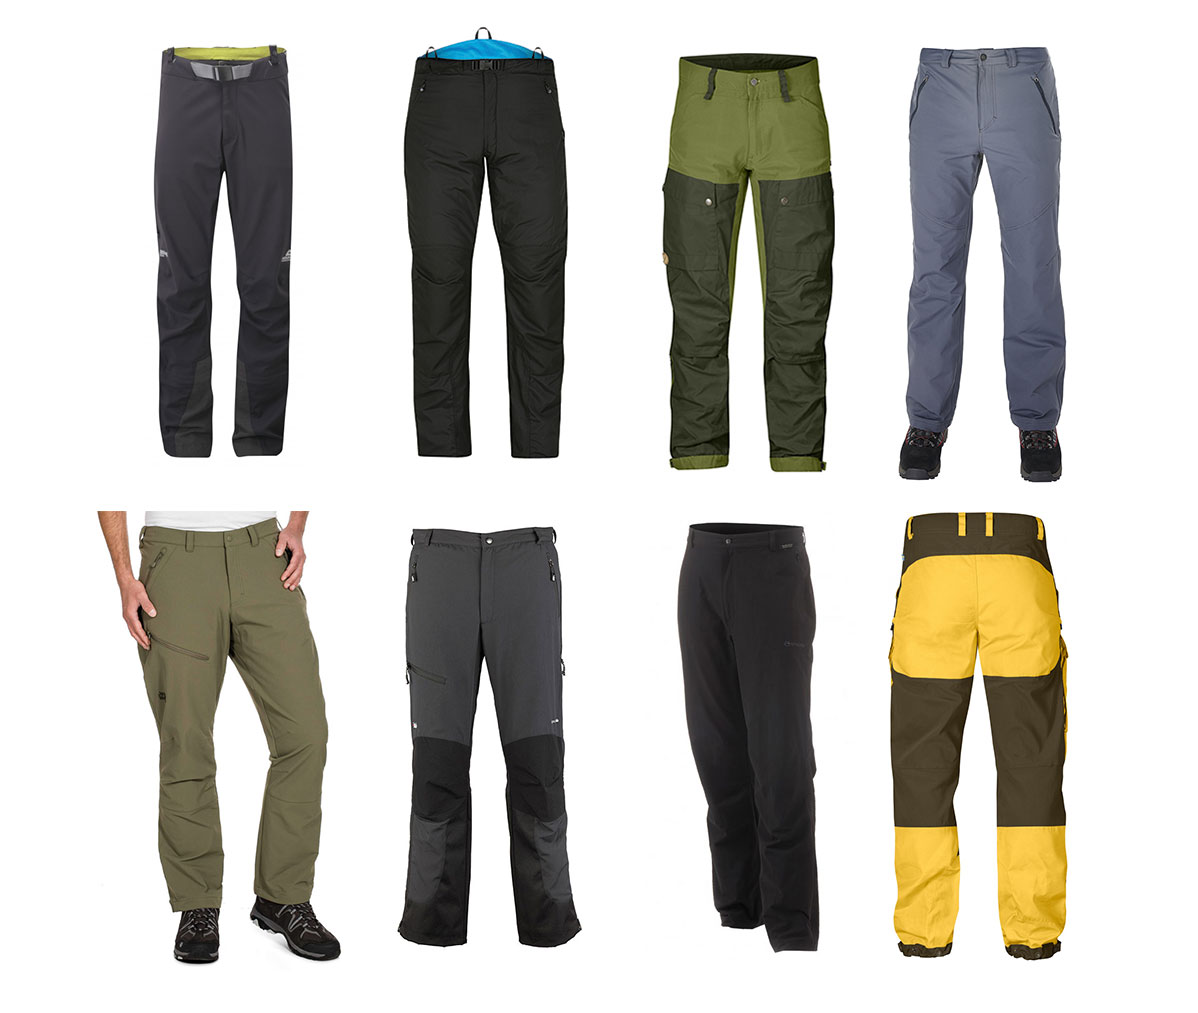 Best Winter Walking Trousers 2016